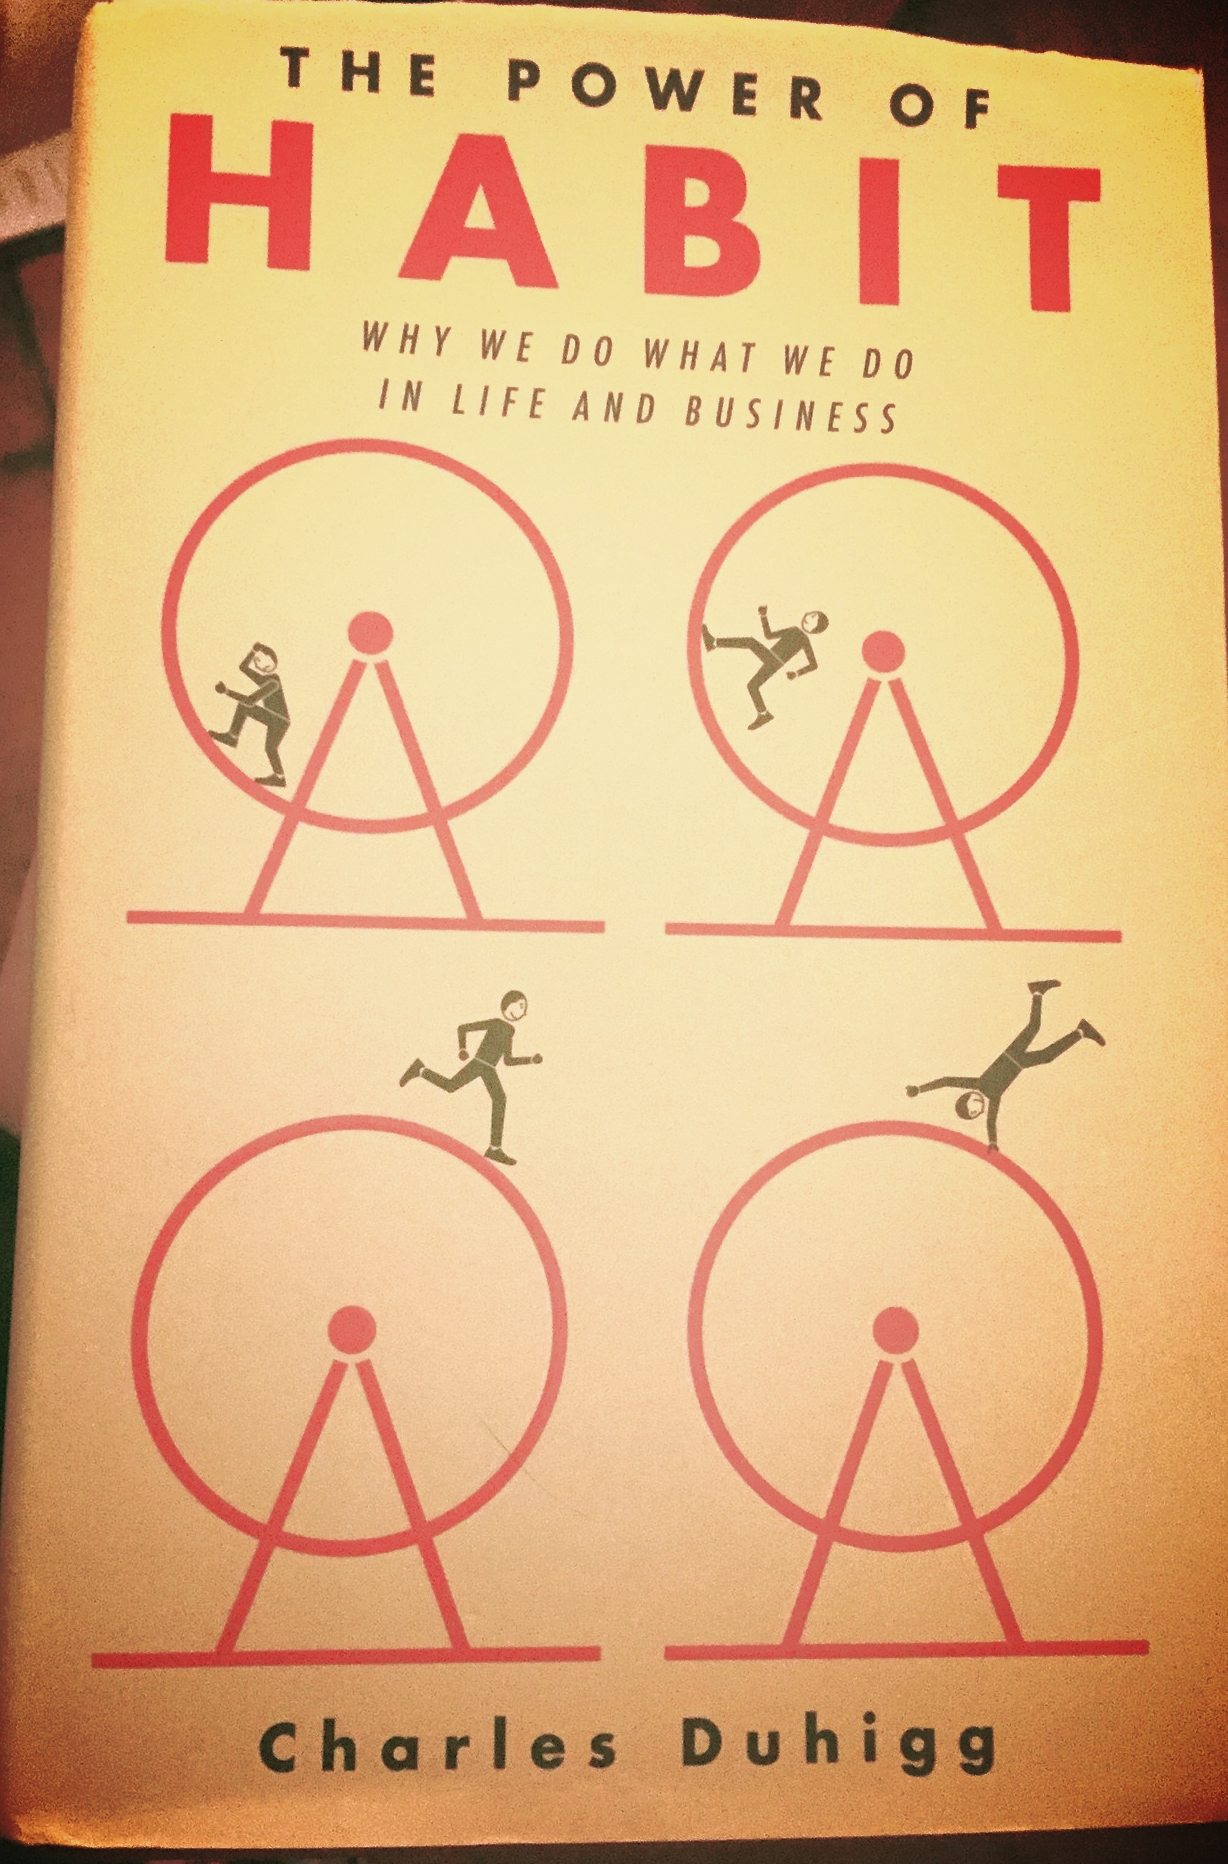 Whether or not you are interested in fitness, this is just an awesome book.